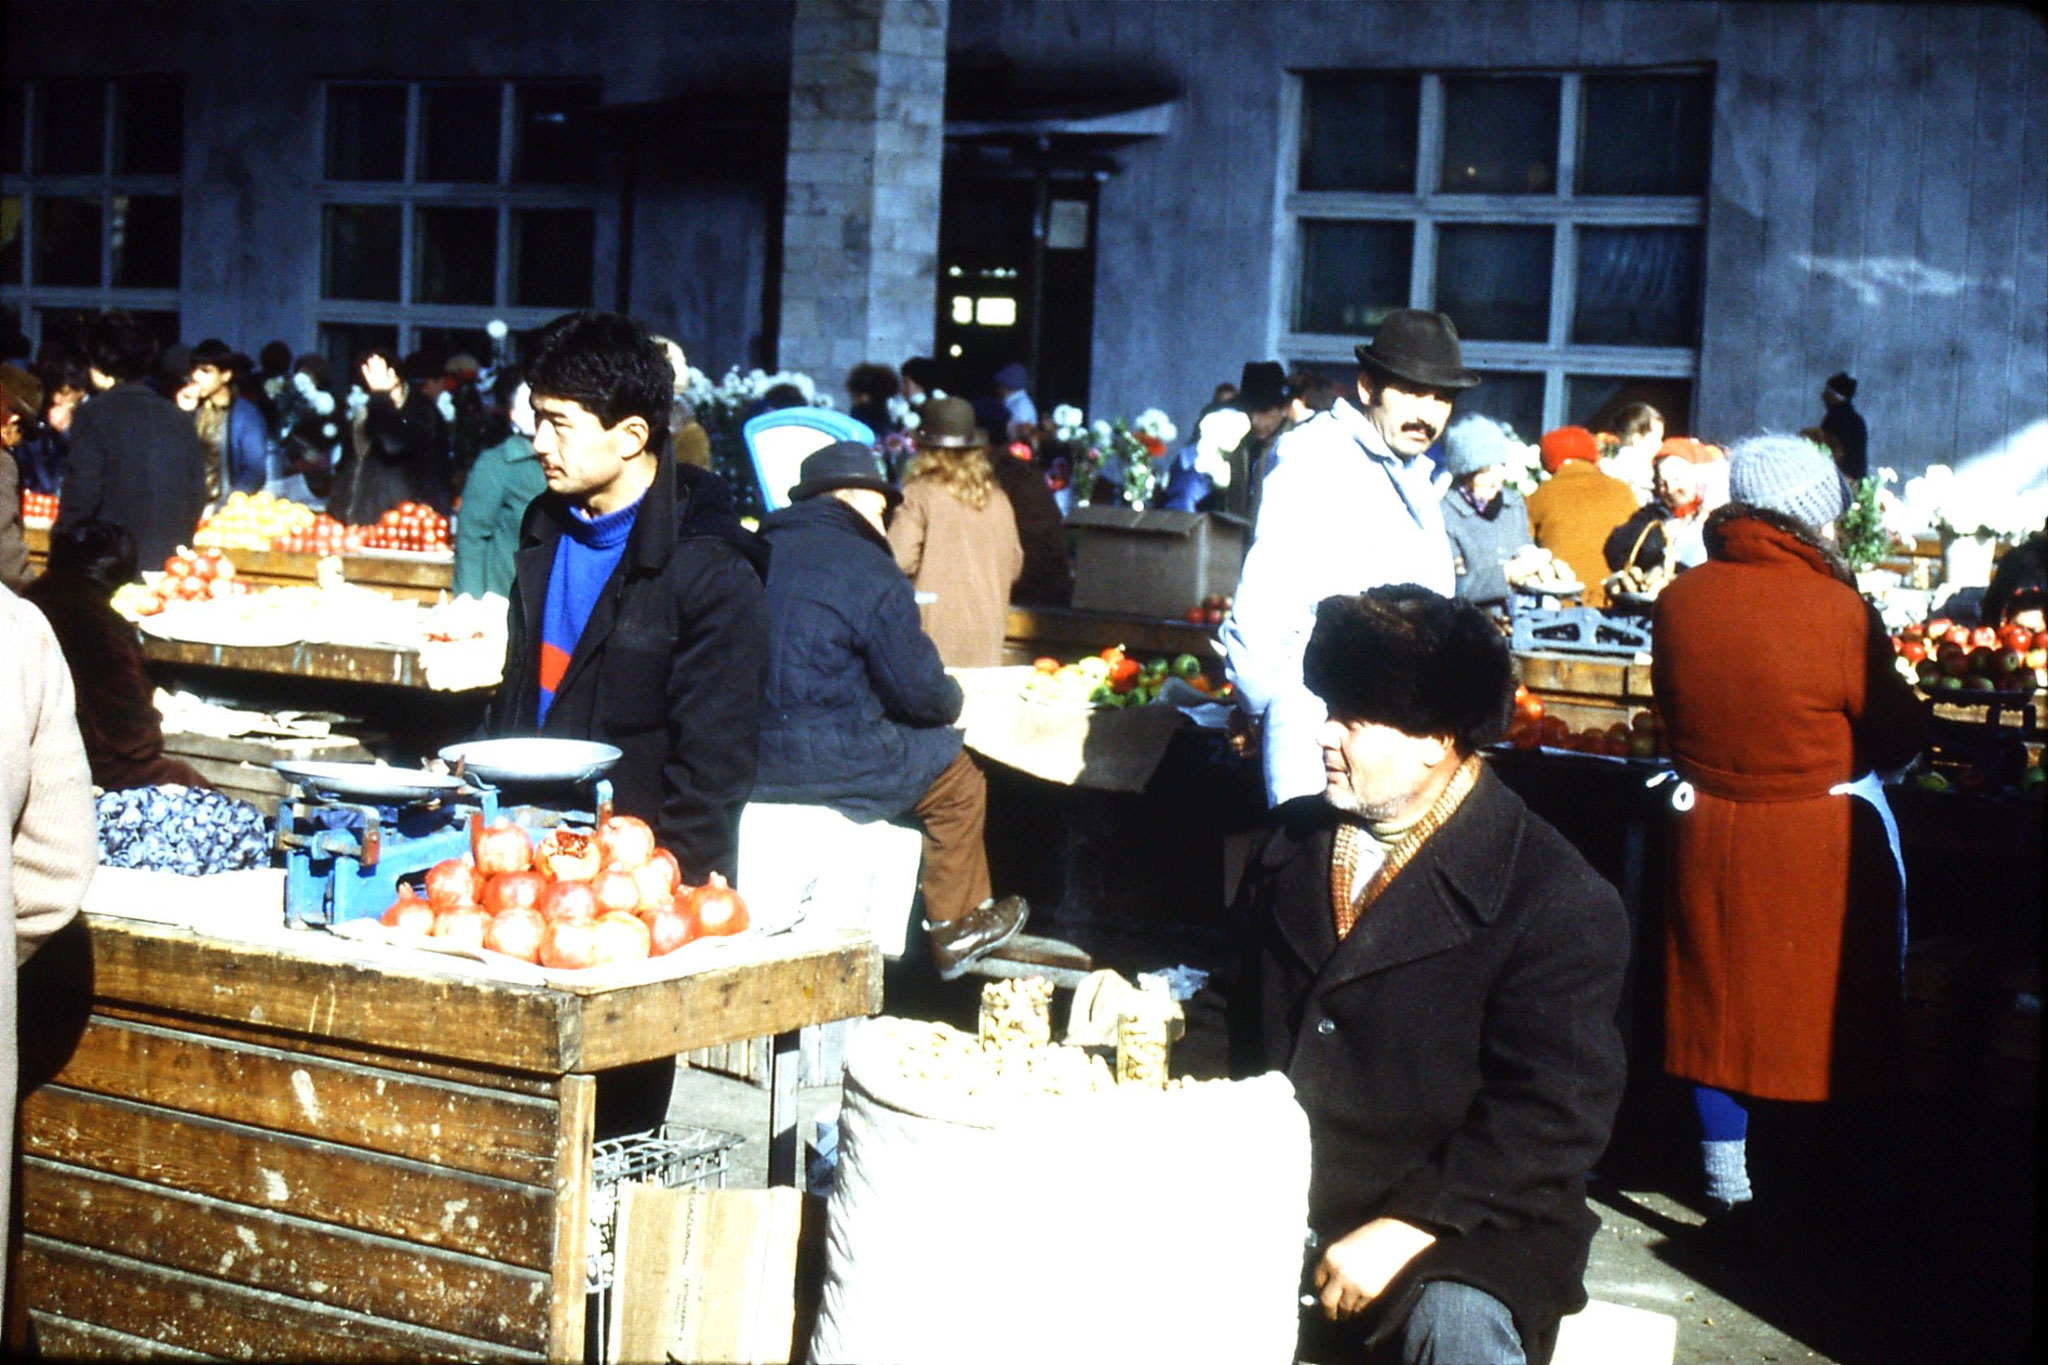 24/10/1988: 36: Irkutsk vegetable market